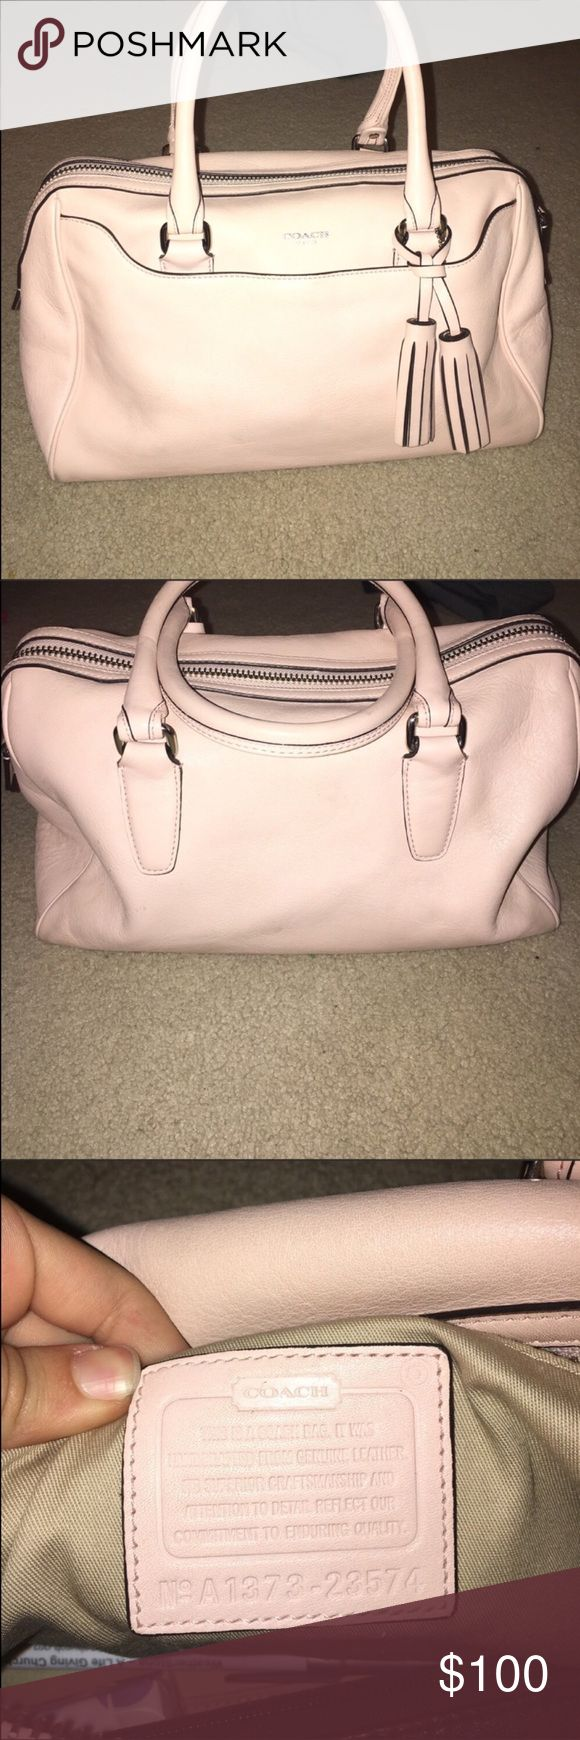 Light pink coach bag It's a beautiful coach purse only used for about a week still brand new. It does have a few spots on it hardly noticeable 💖😊 offers welcome 😌😍 Coach Bags